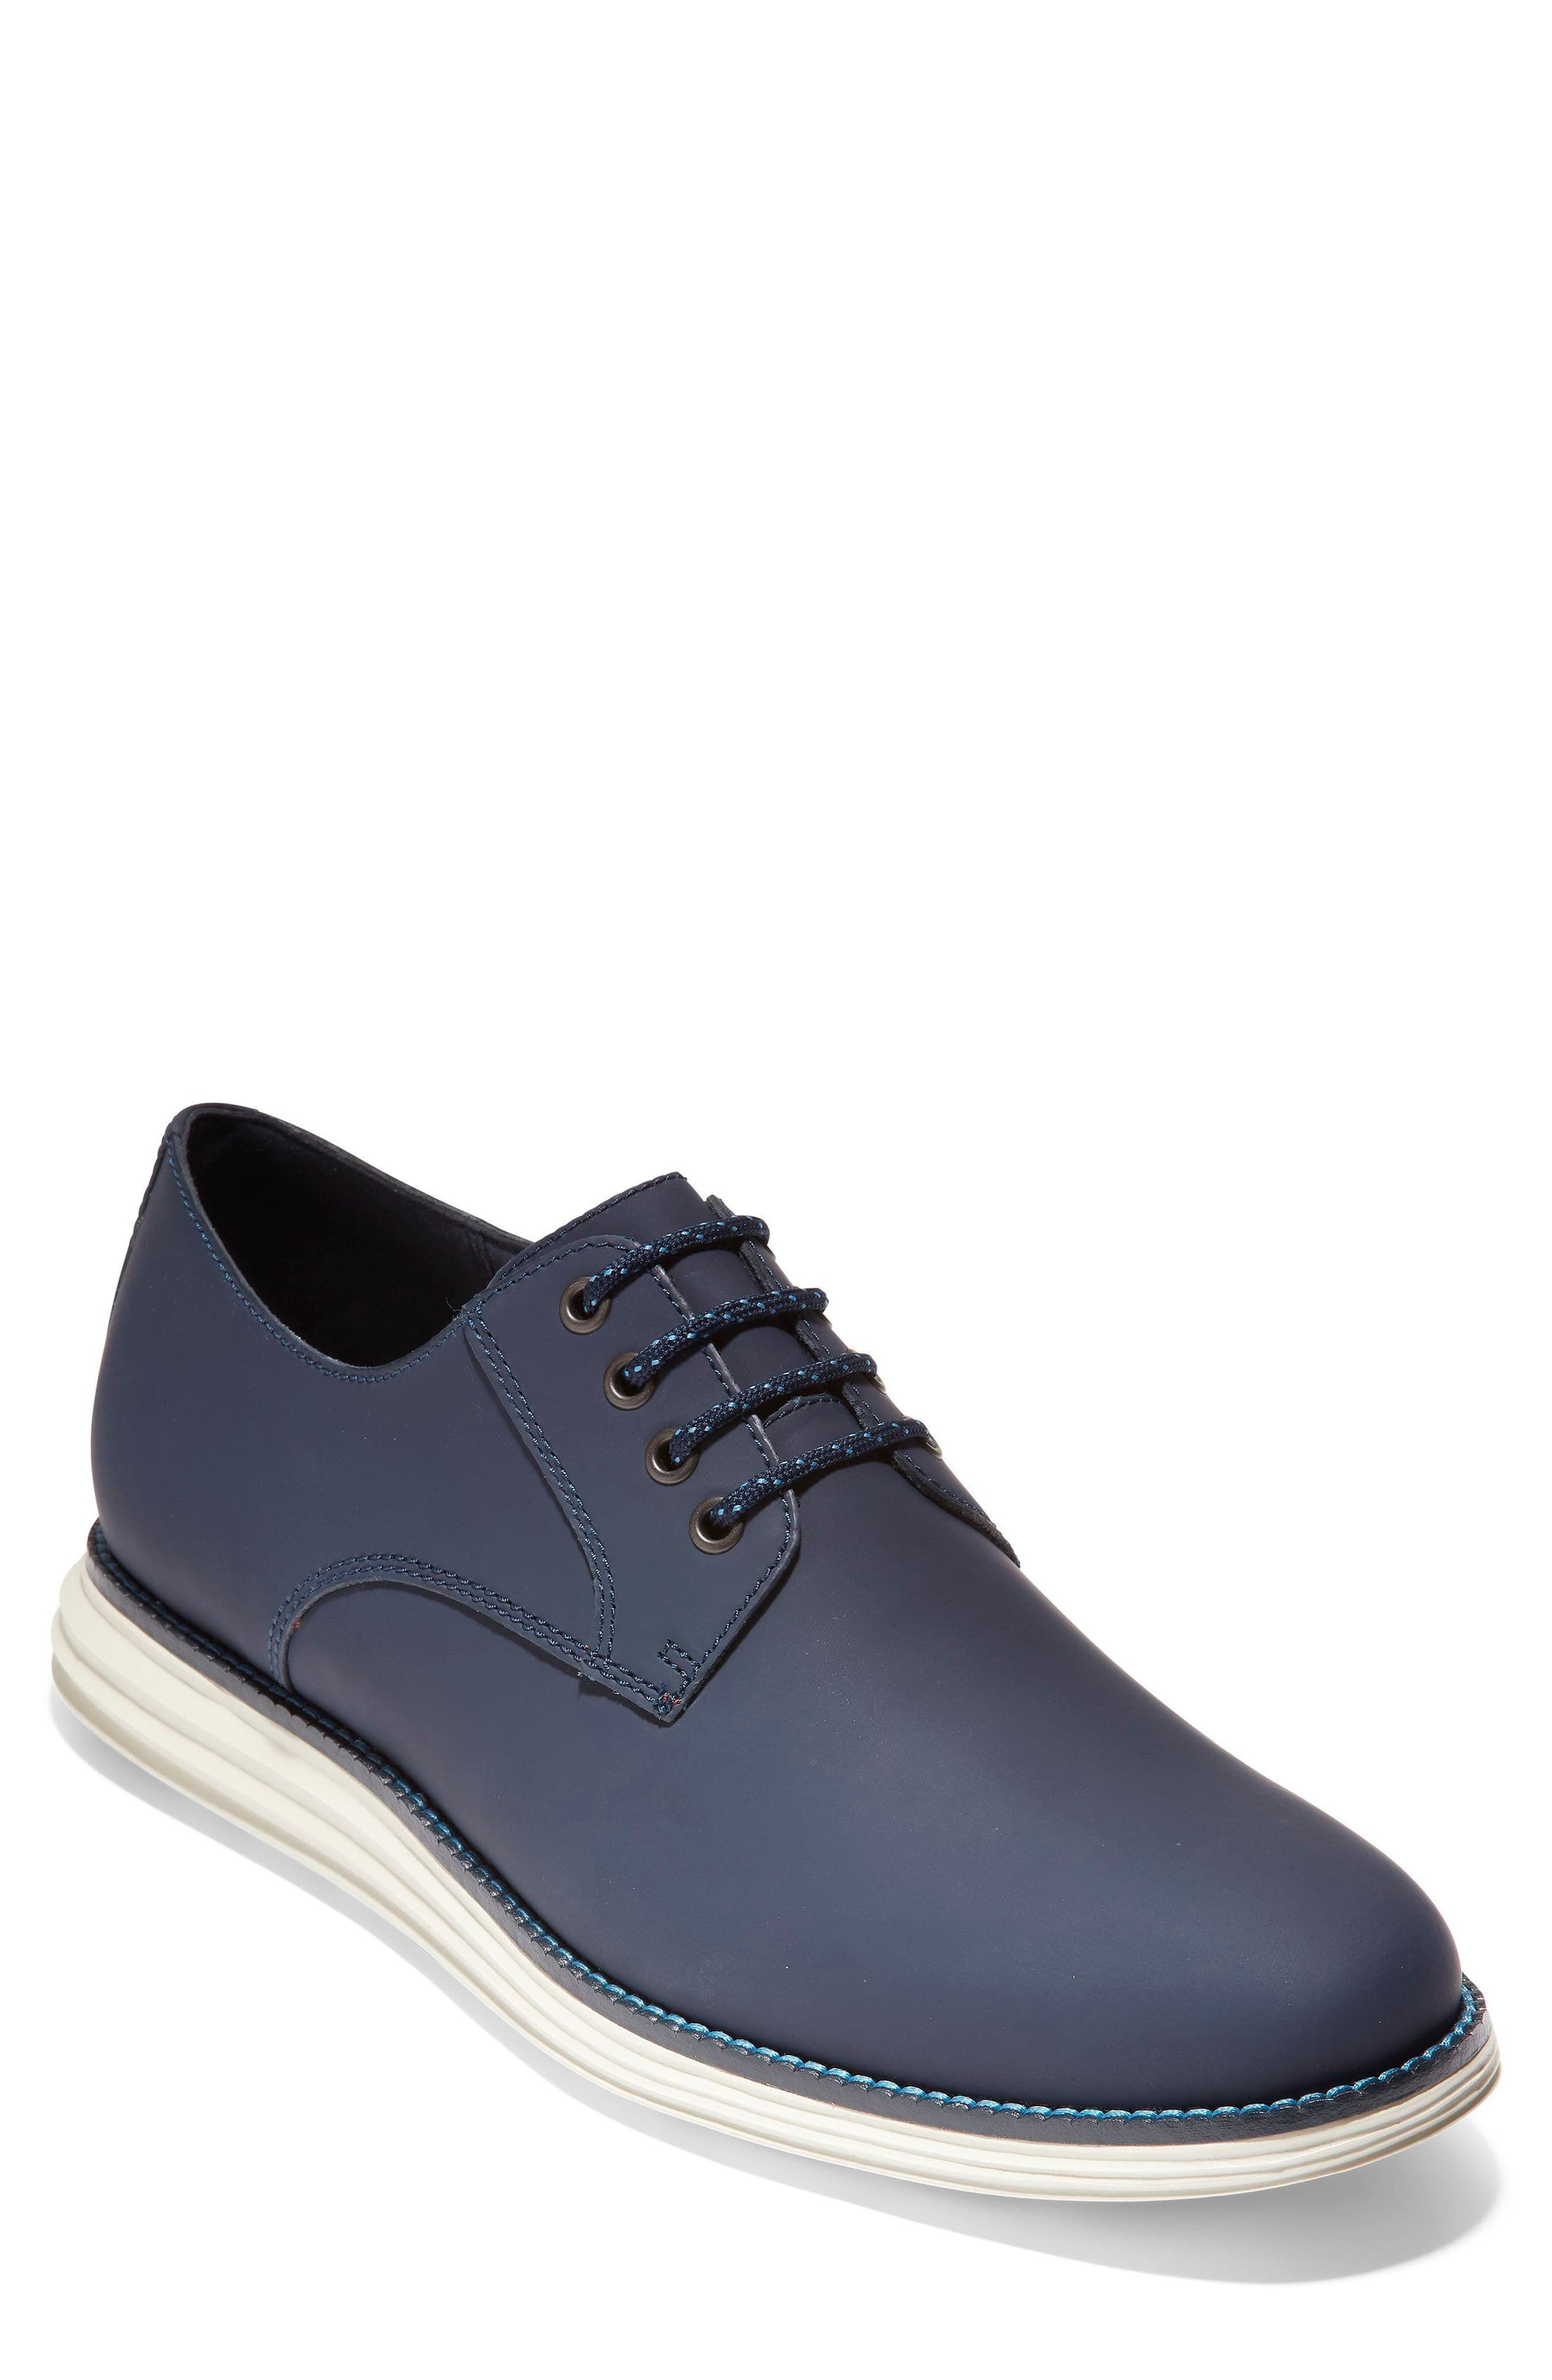 fb02dacdb4 Cole Haan Original Grand Plain Toe Derby in 2019 | Products | Cole ...